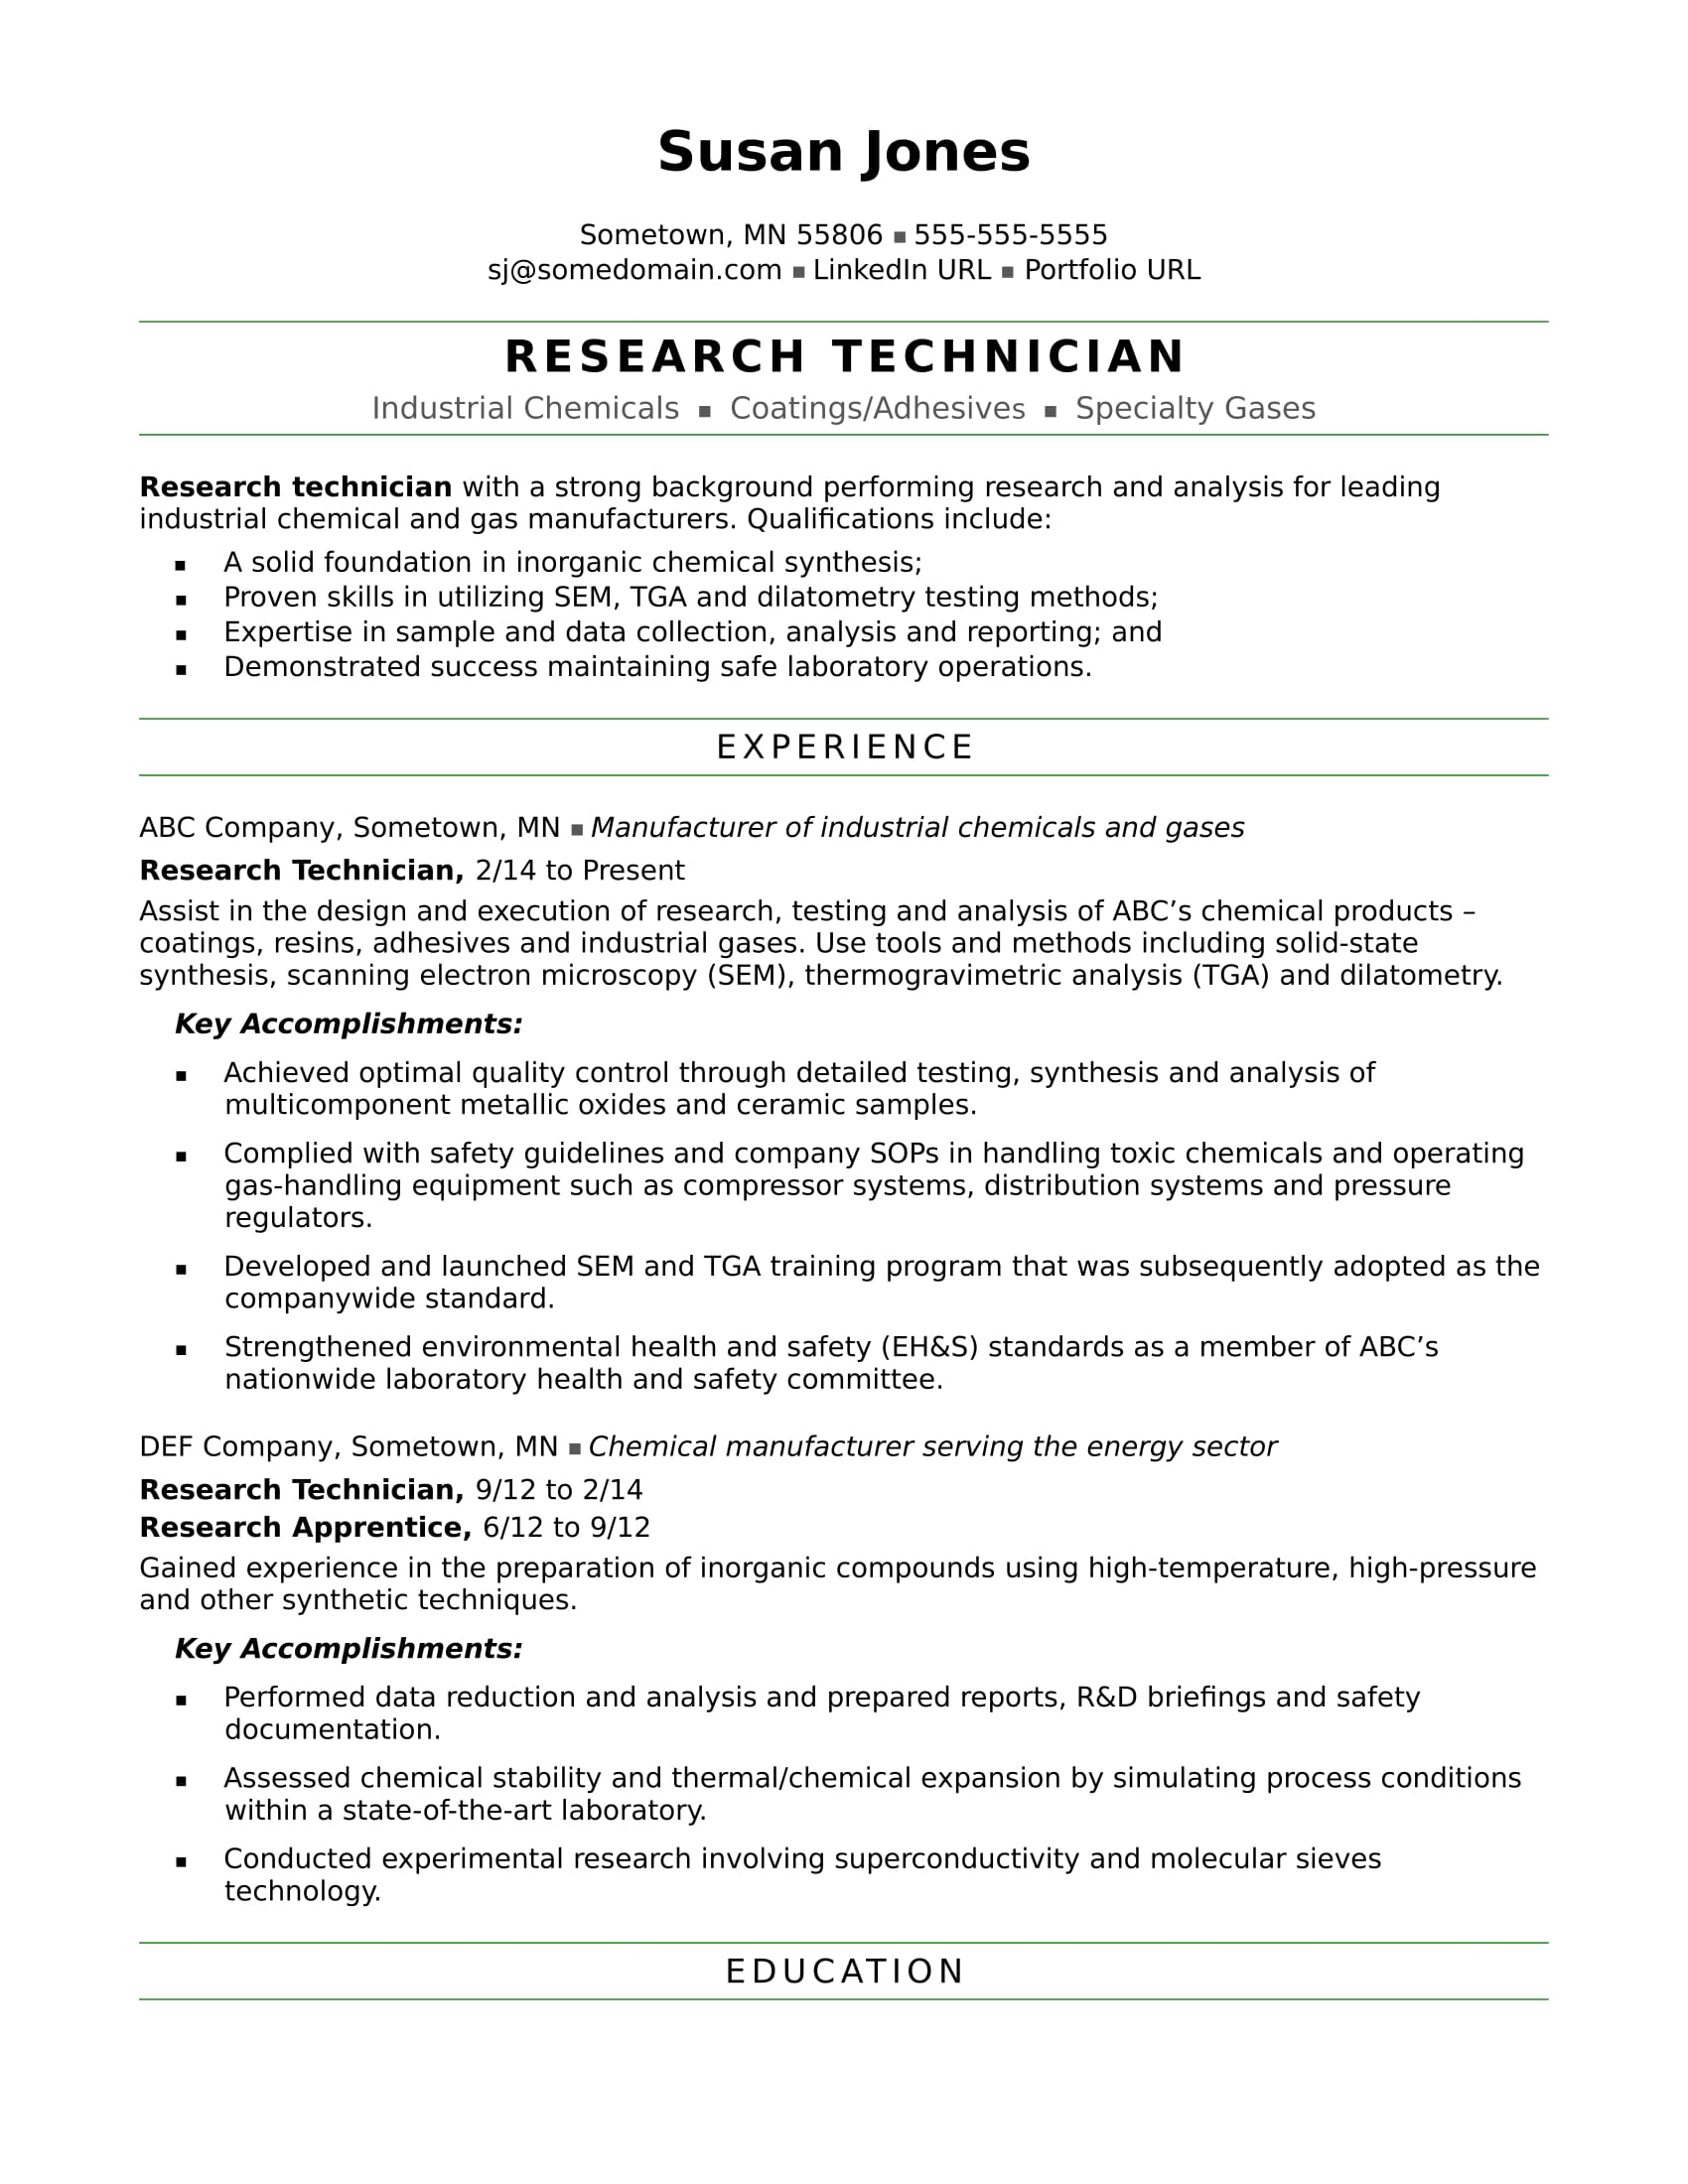 research technician resume sample